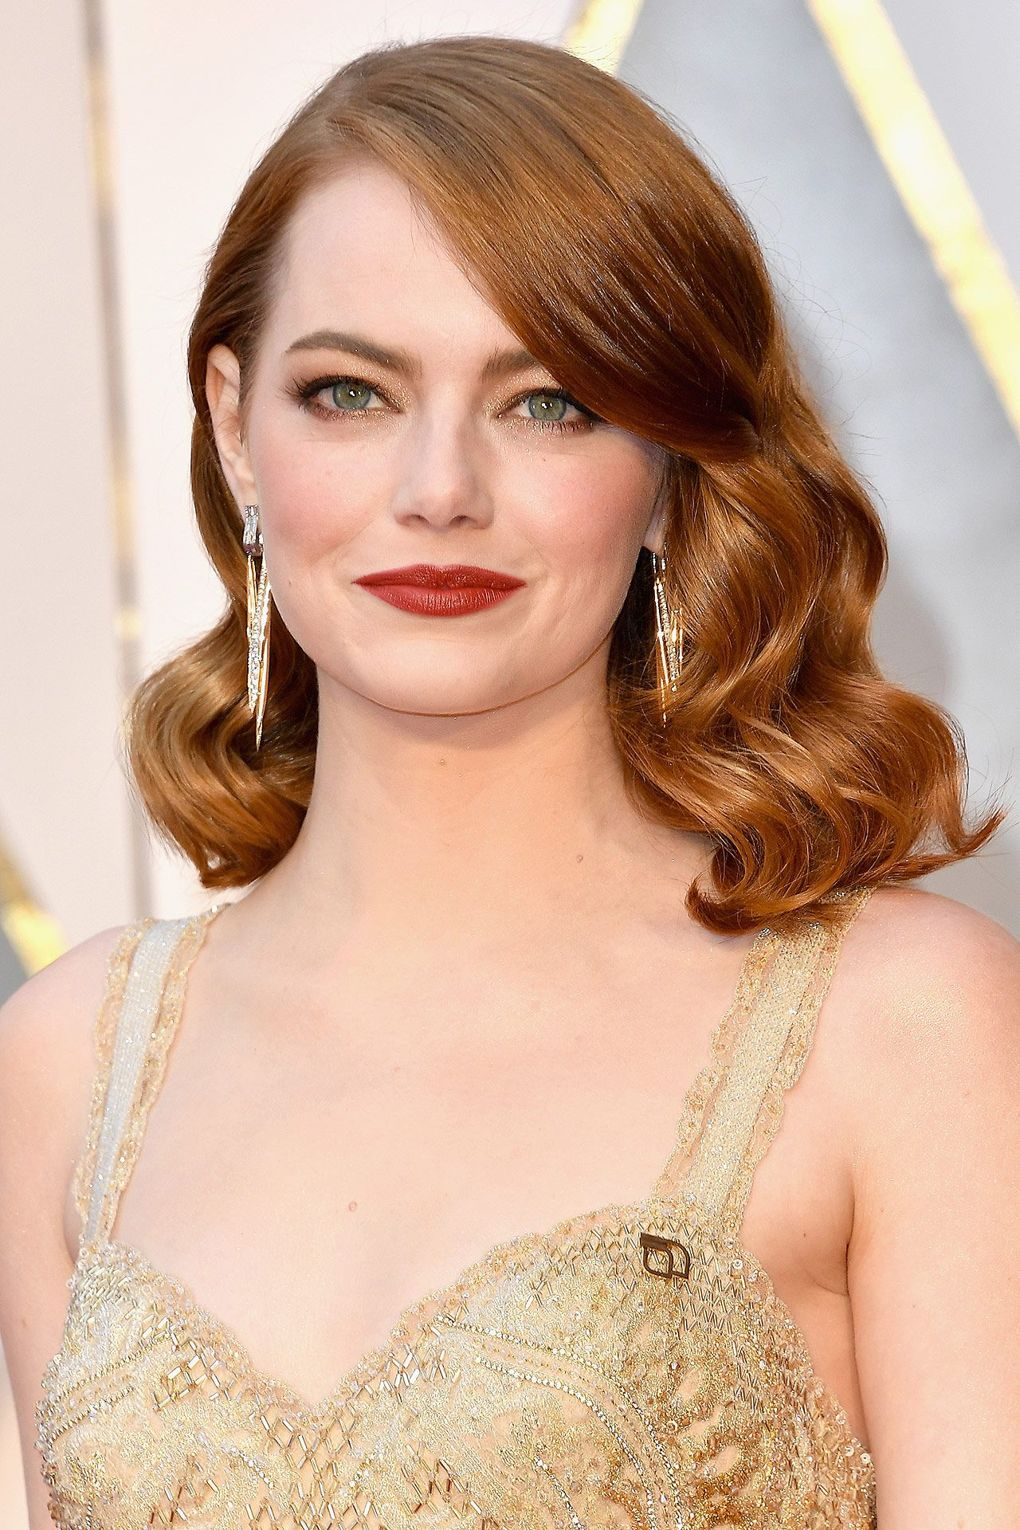 Emma Stone Oscars Inspired Makeup Look - 2